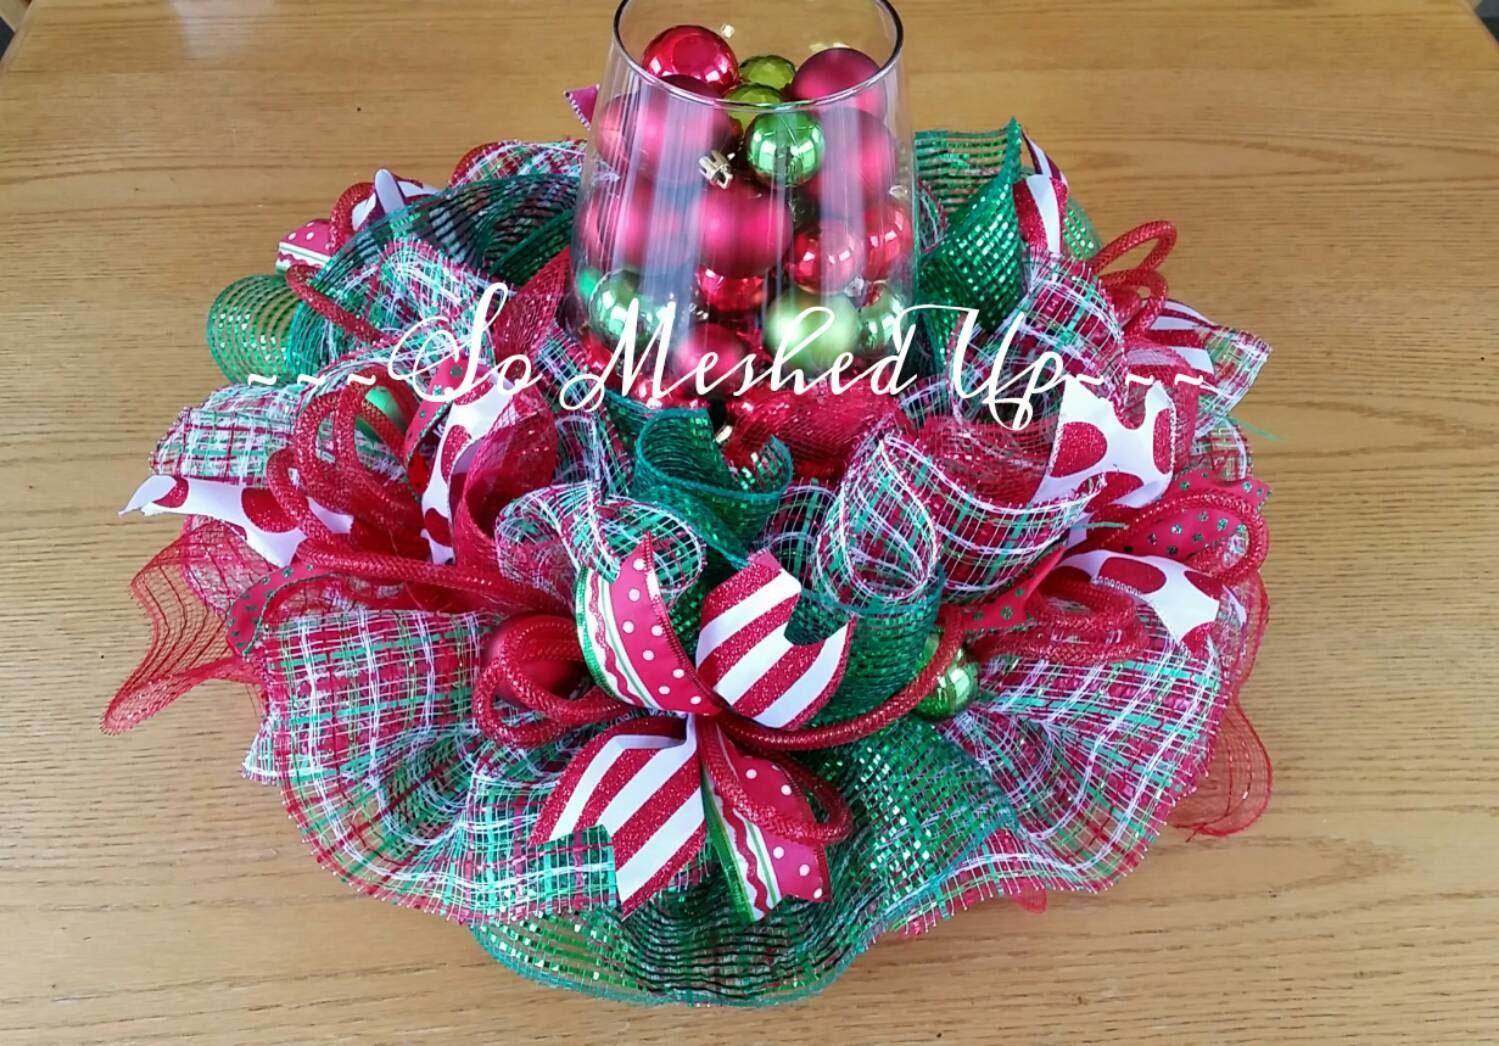 Deco mesh christmas table centerpiece in reds apple by